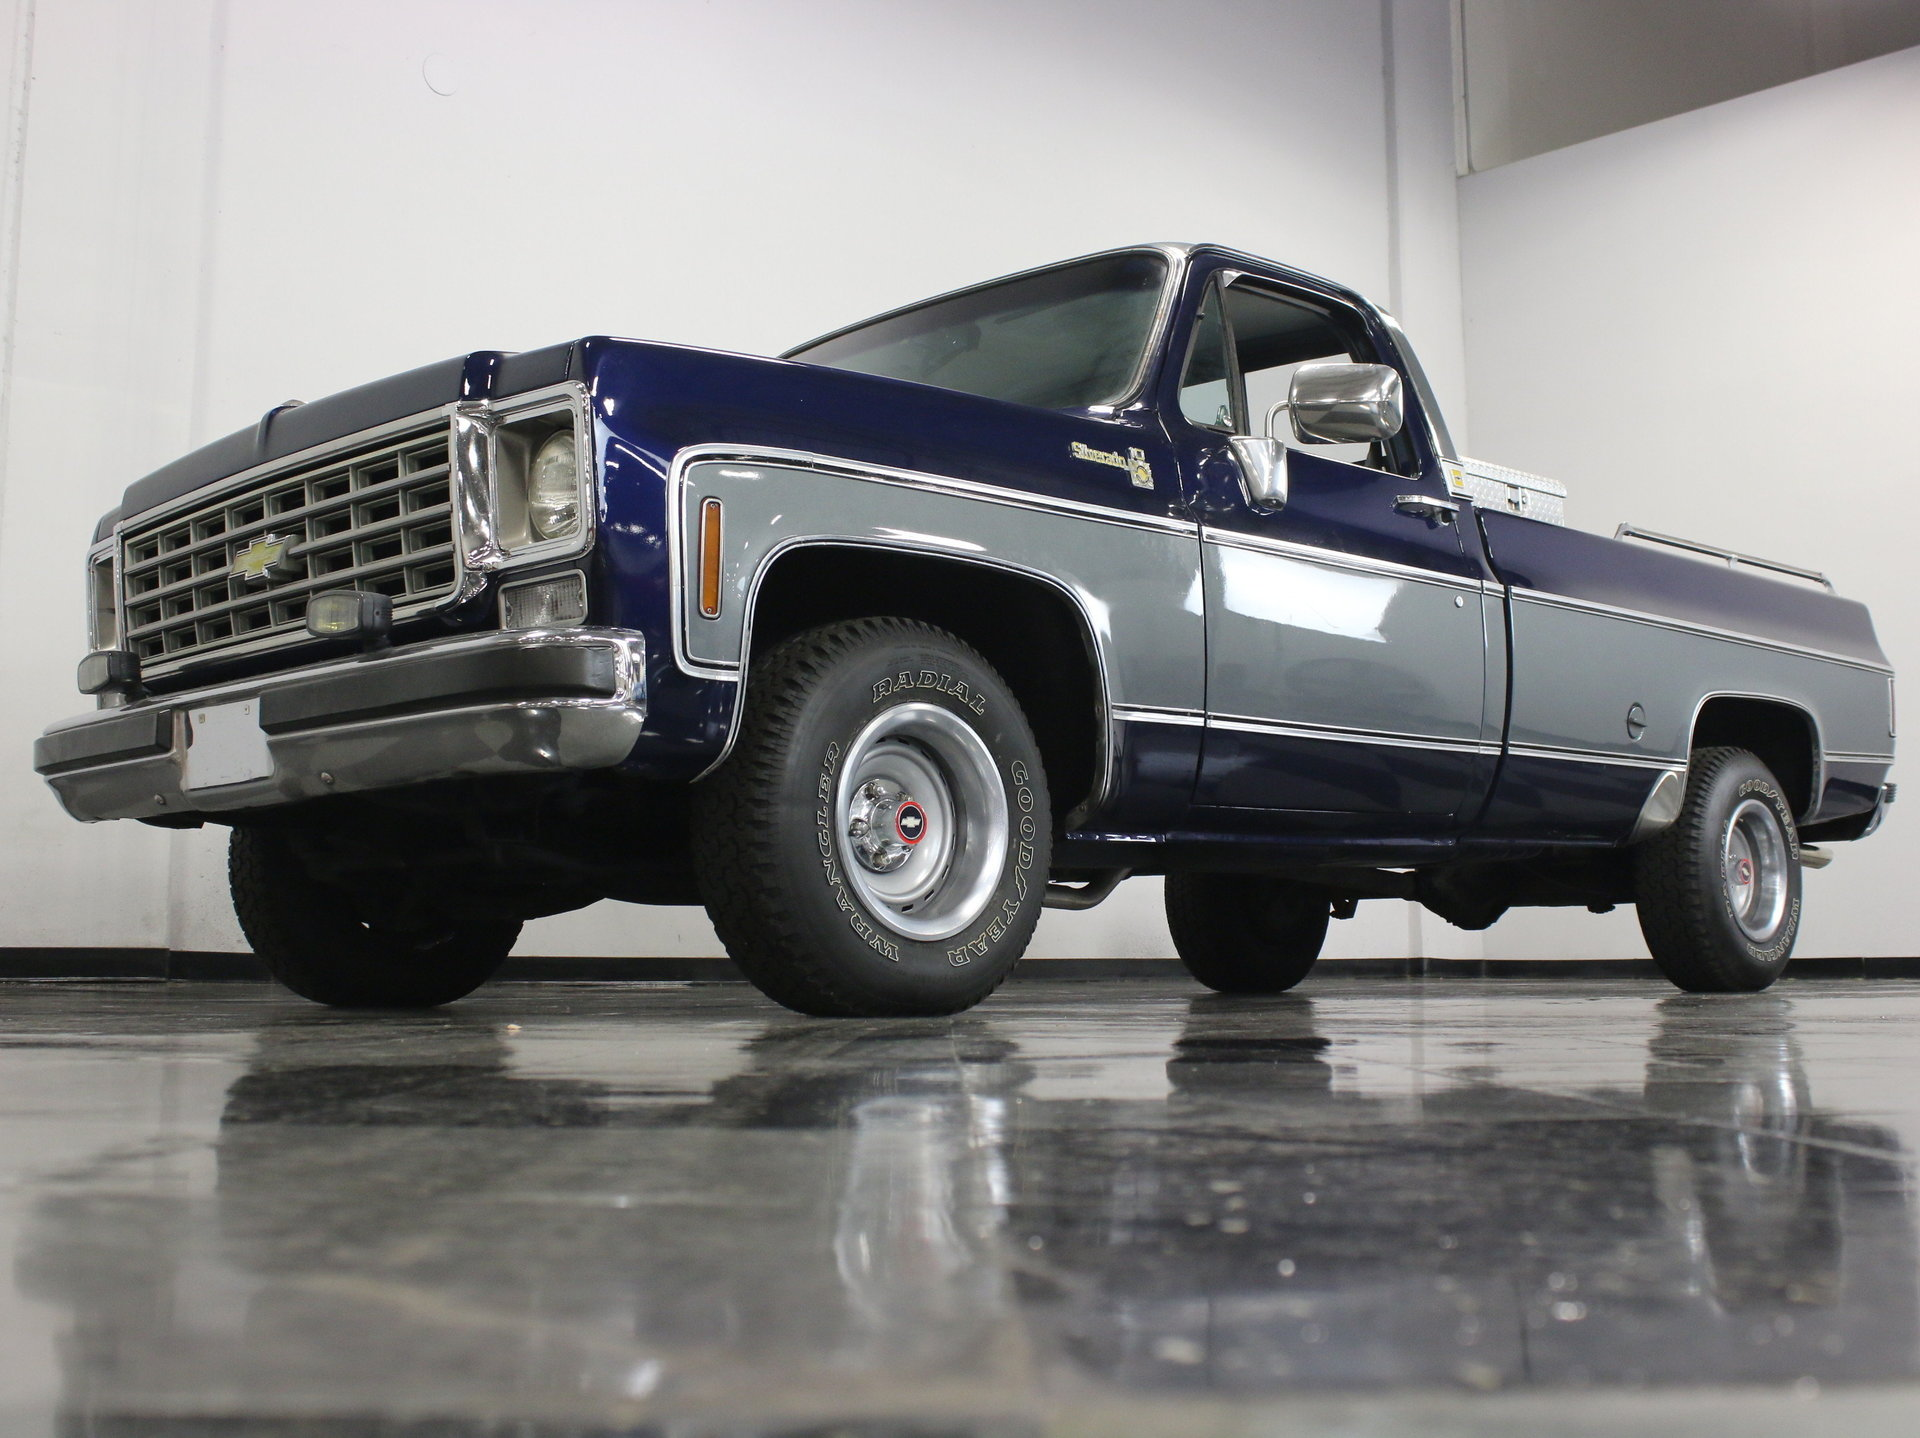 1976 Chevrolet C10 Streetside Classics The Nations Trusted Chevy Custom Deluxe Truck View 360